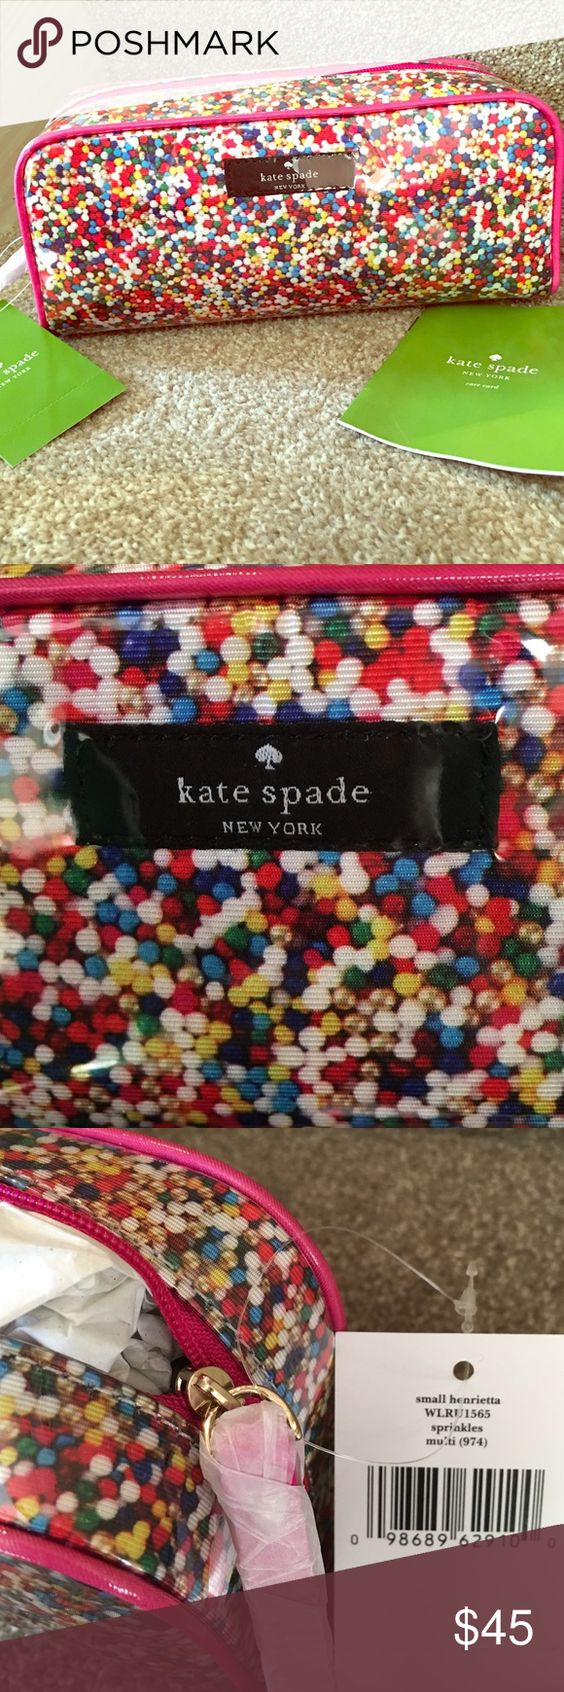 """Kate Spade cosmetic case Small Kate Spade Henrietta cosmetic bag. NWT and care card! Beautiful, bright sprinkles print and Kate Spade logo covered in pvc. 3.5"""" h and 7.7"""" w. kate spade Bags Cosmetic Bags & Cases"""